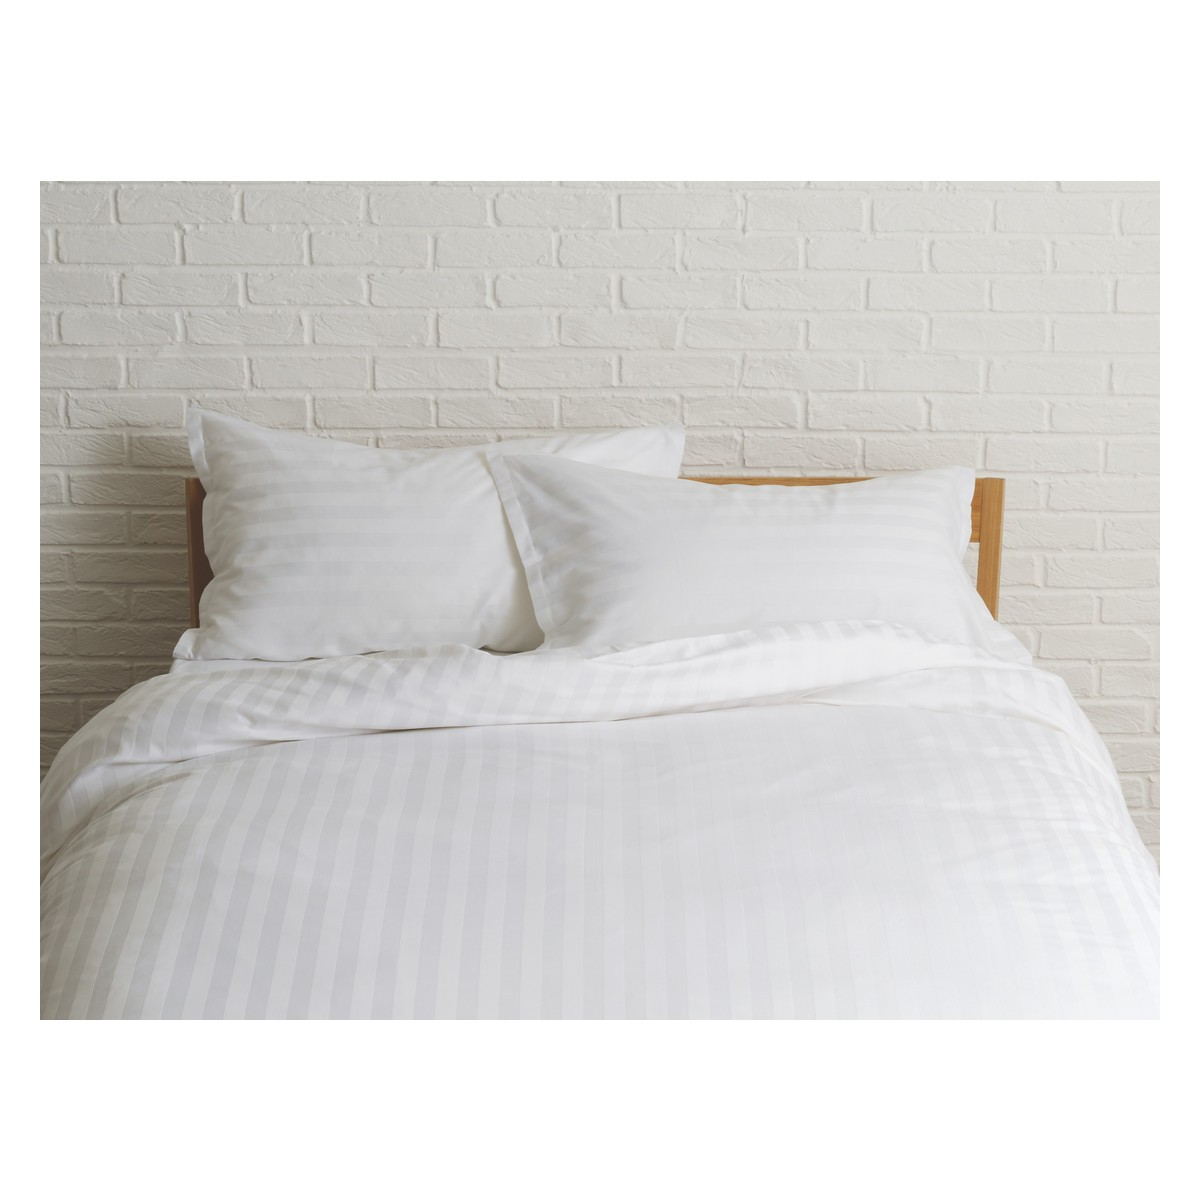 Blue and White Stripe Duvet Cover | White Duvet Cover | Target Comforter